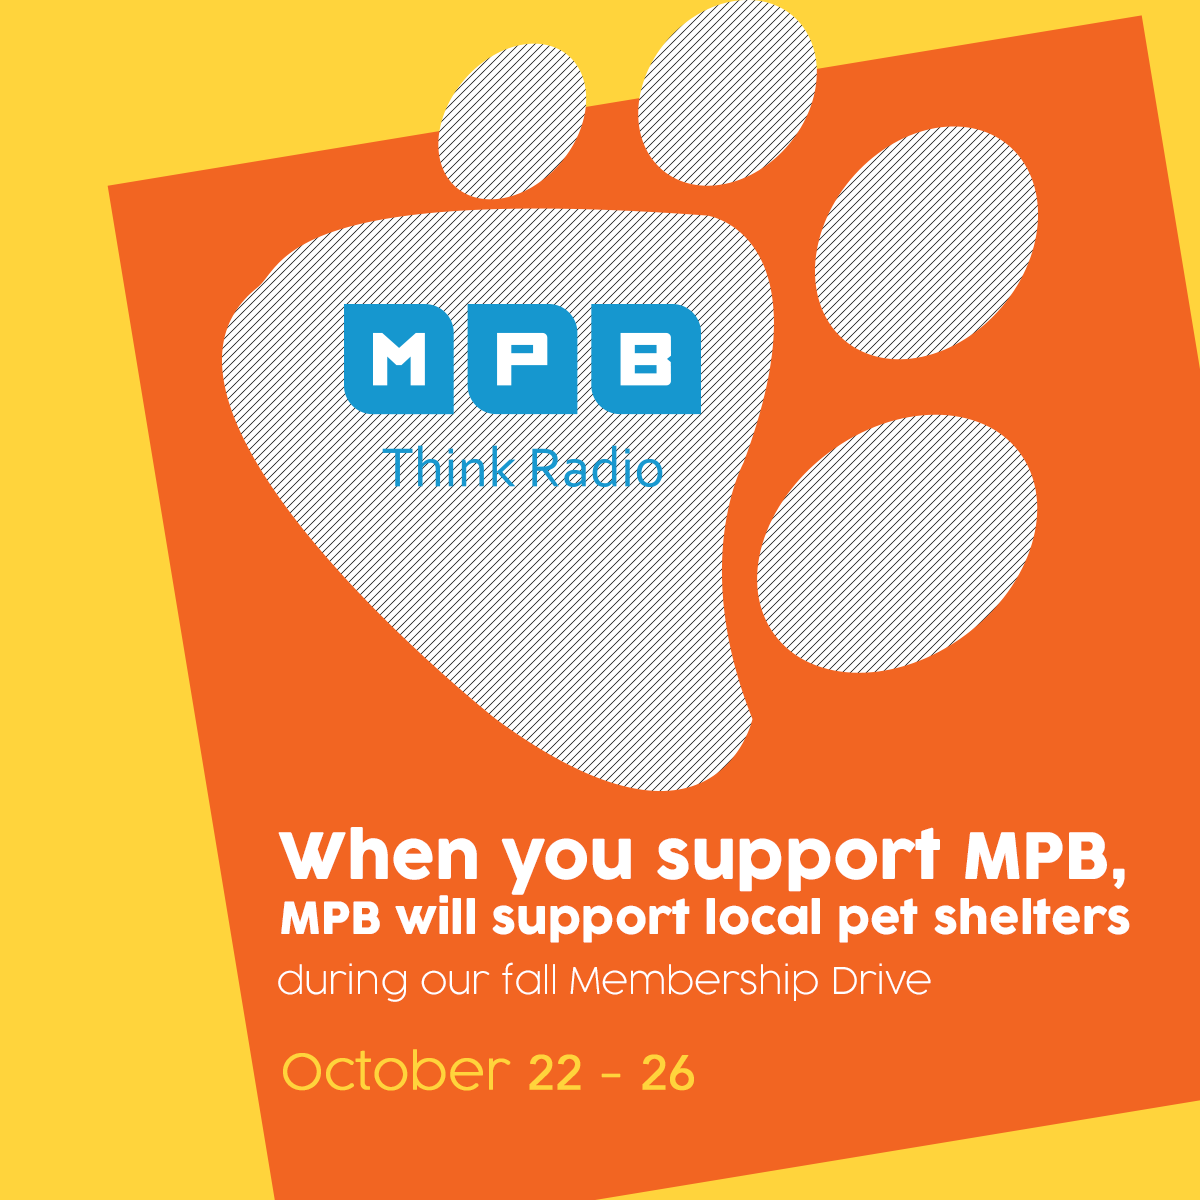 When you support MPB, MPB will support local pet shelters during our Fall Membership Drive.